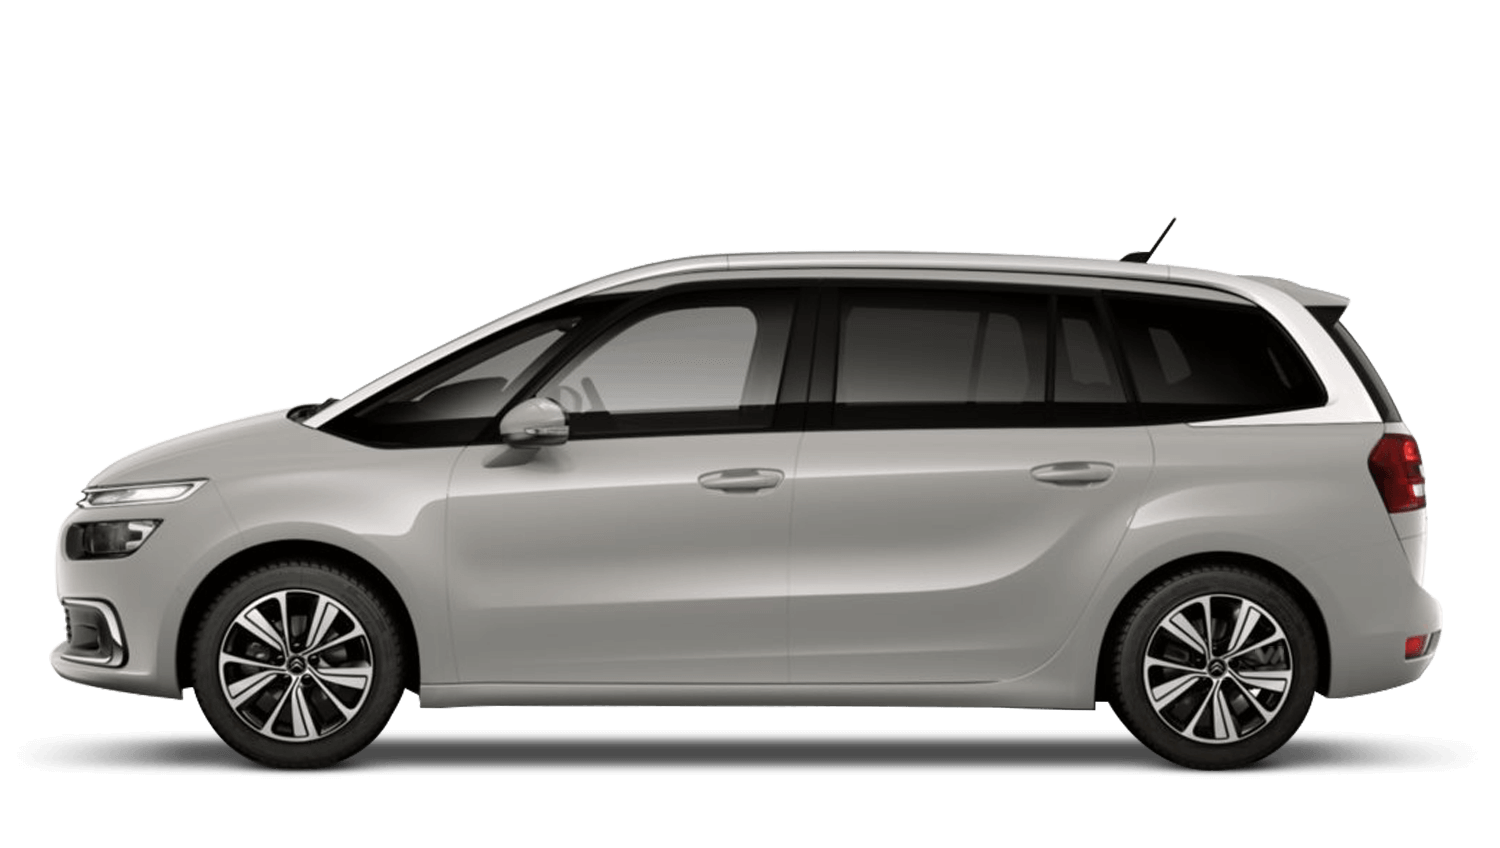 Grand C4 Spacetourer Leasing Offers